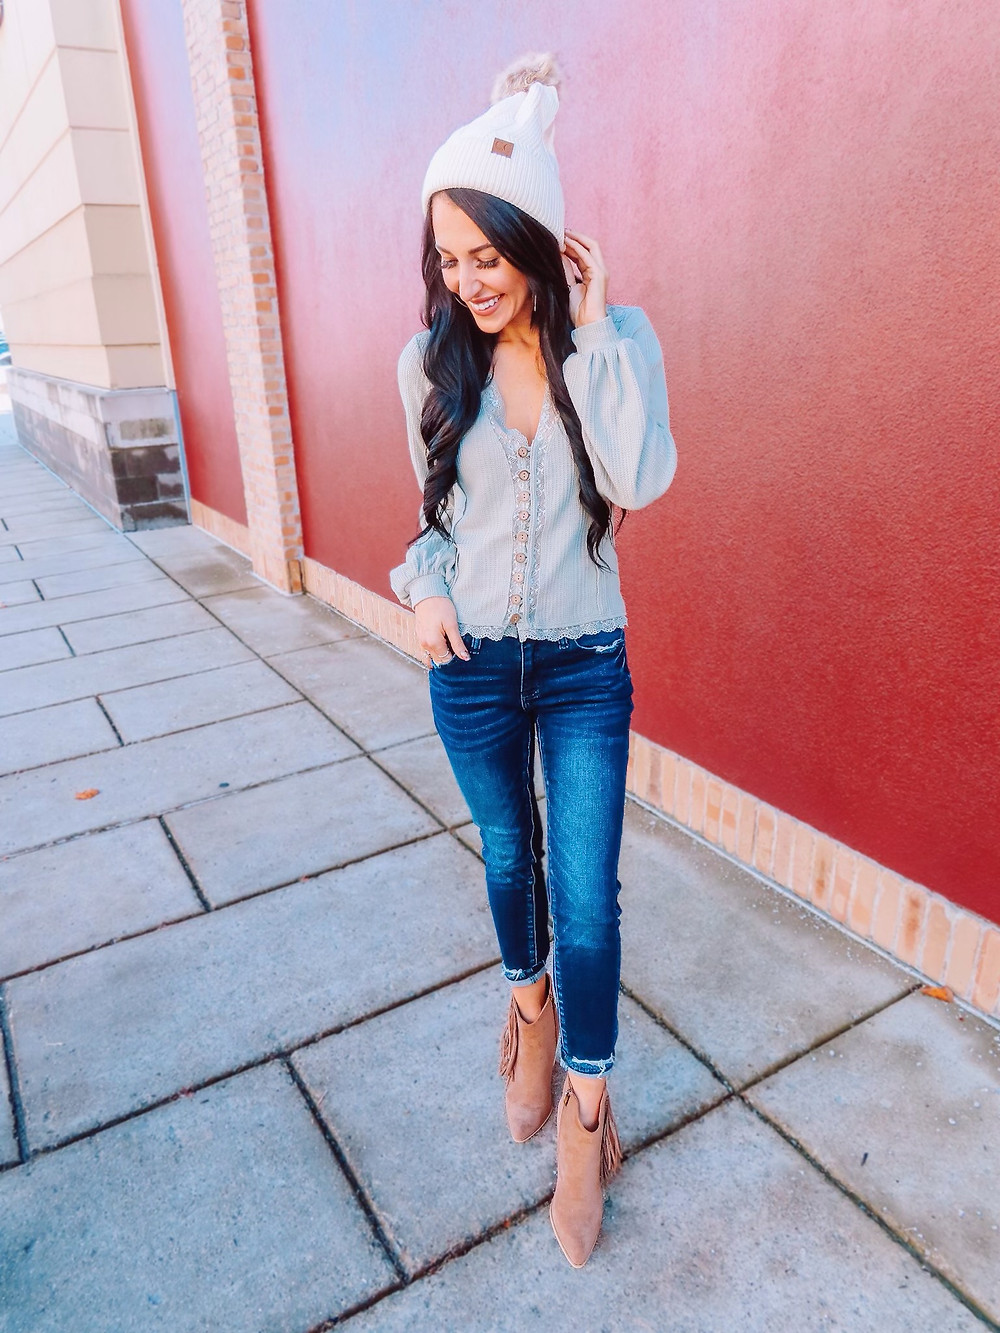 indy clothing, fall trends, winter trends, the buckle, mens fashion, womens fashion, indy blogger